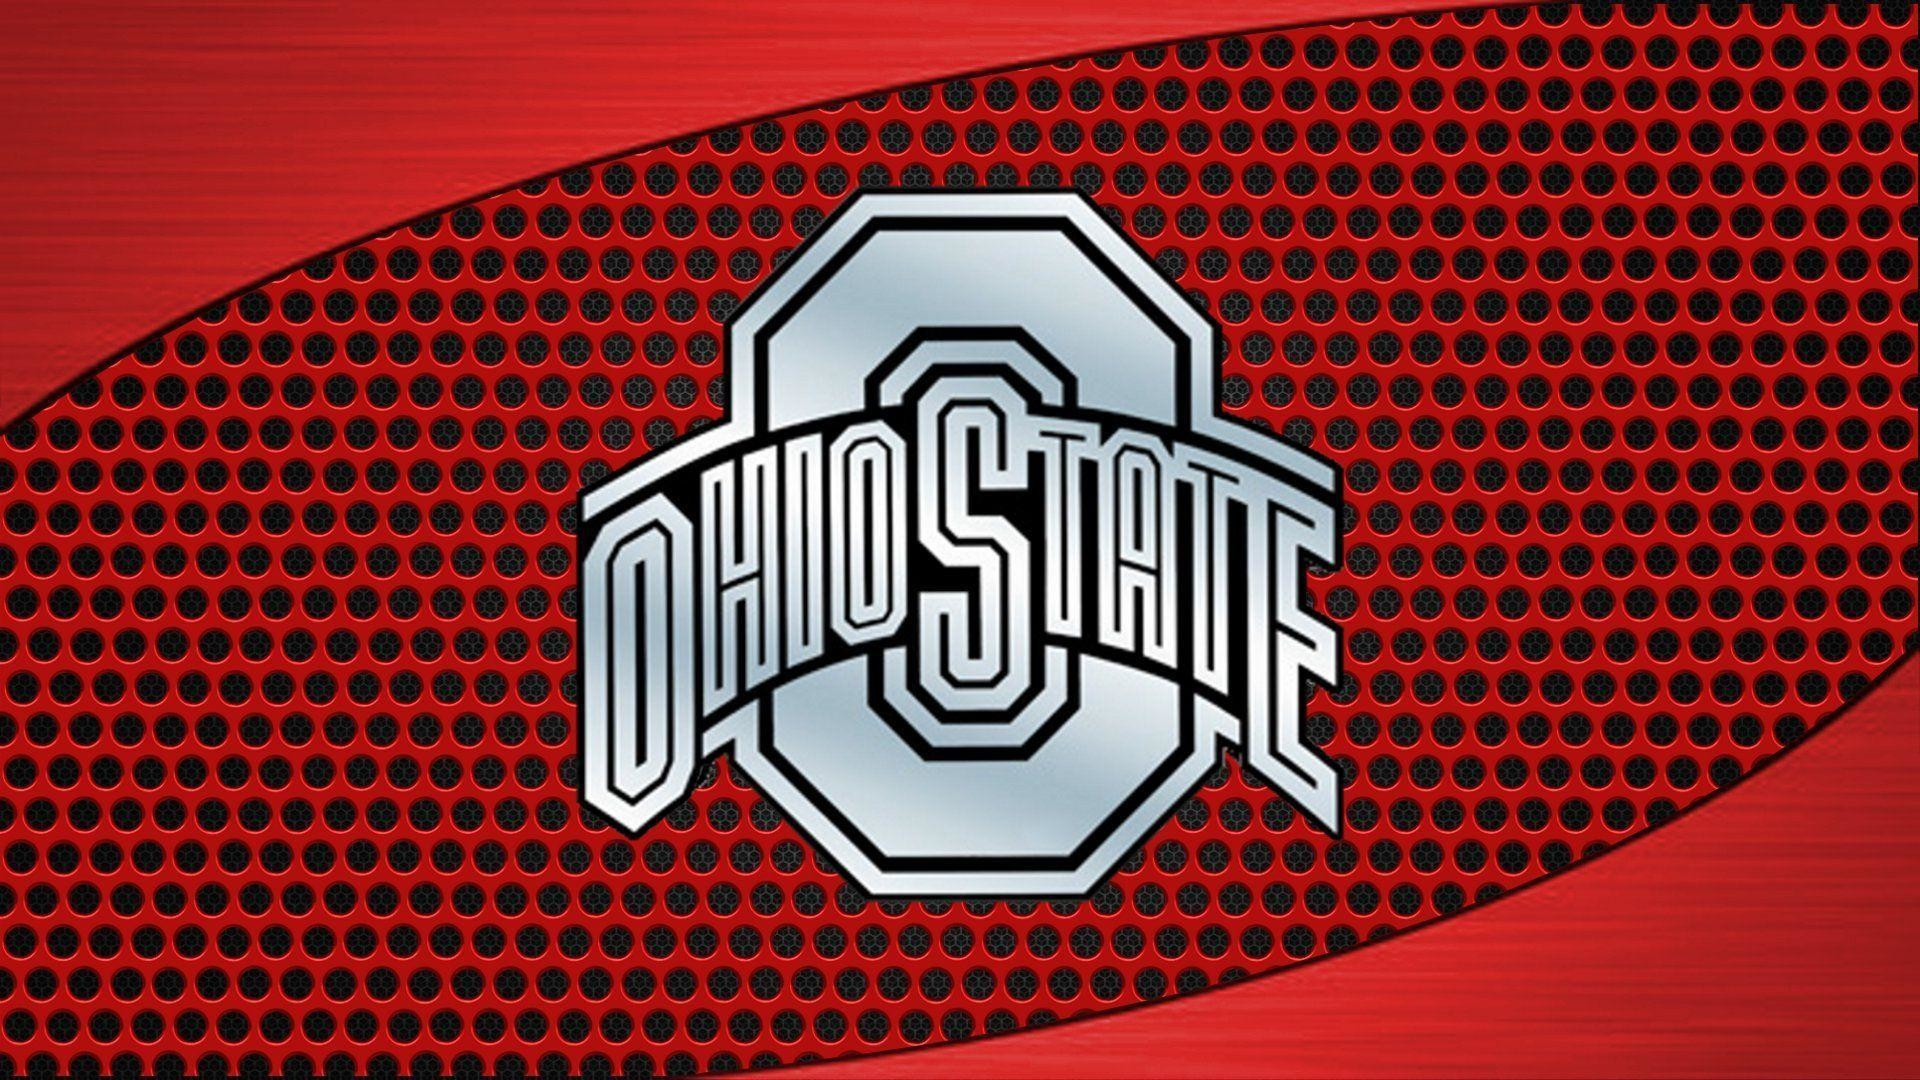 1920x1080 OSU Wallpaper 333 - Ohio State Football Wallpaper (29289012) - Fanpop